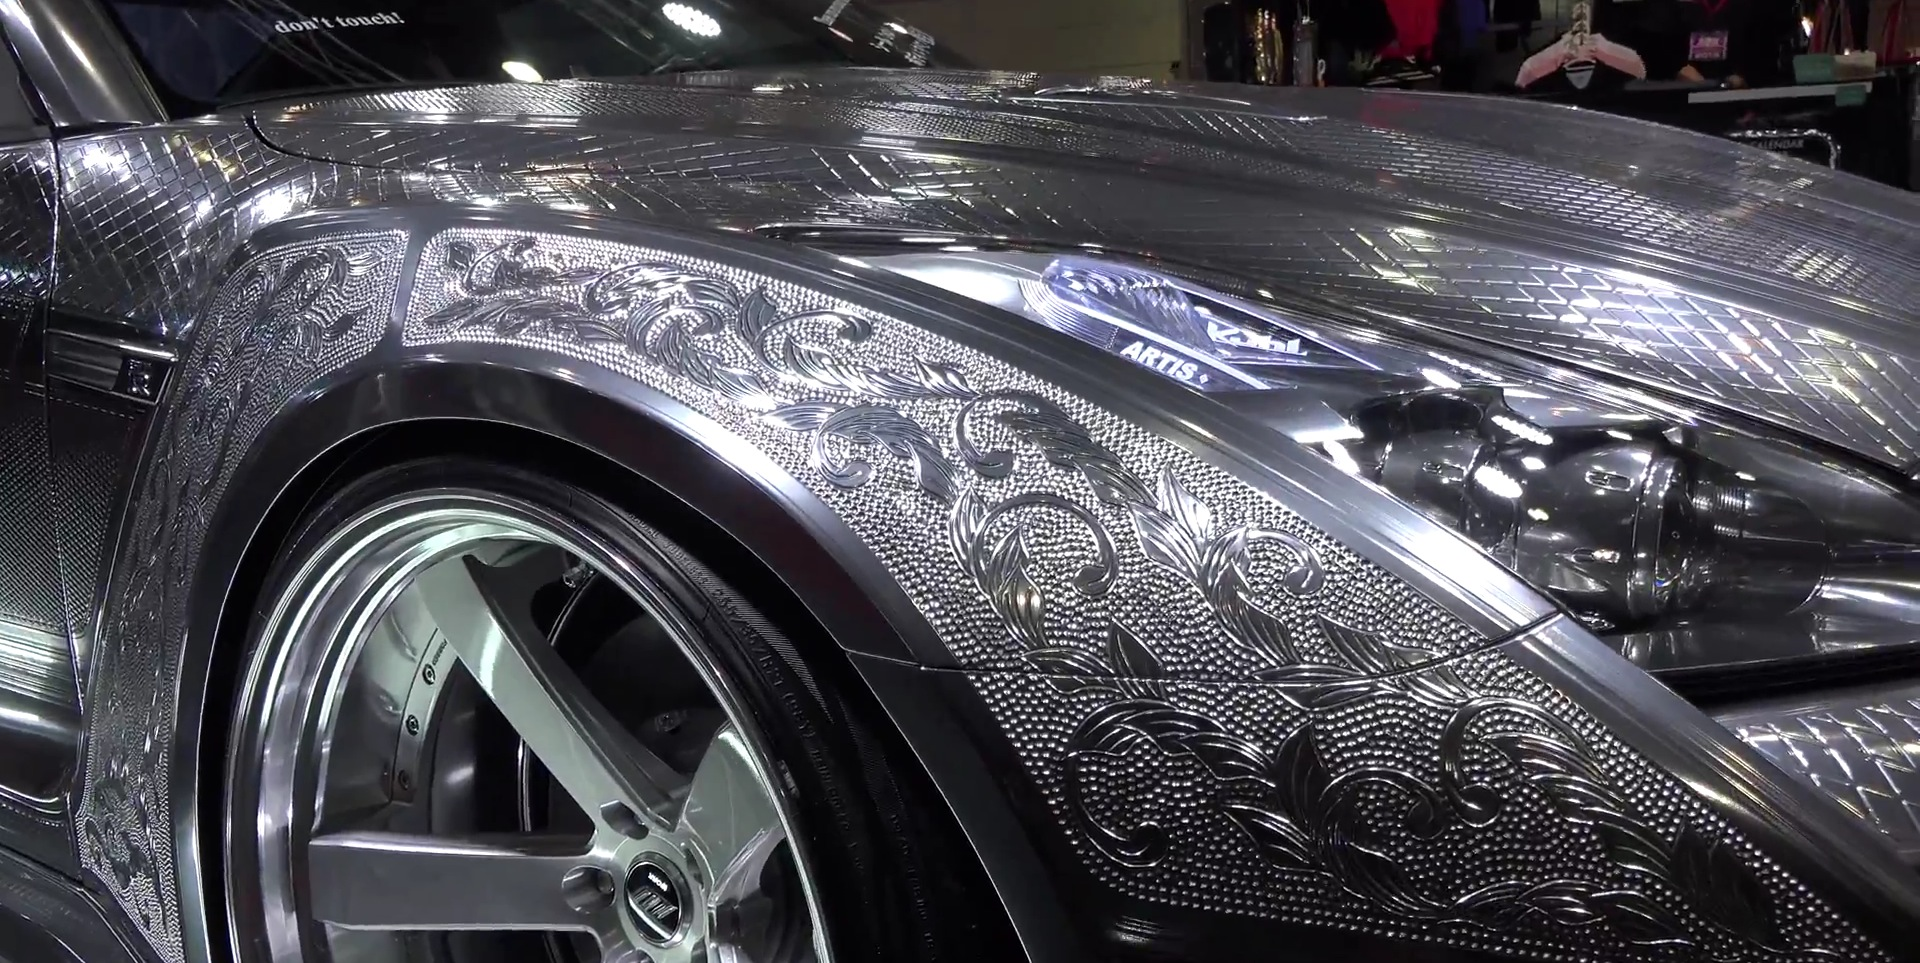 Nissan Gt R With Engraved Silver Body By Kuhl Is